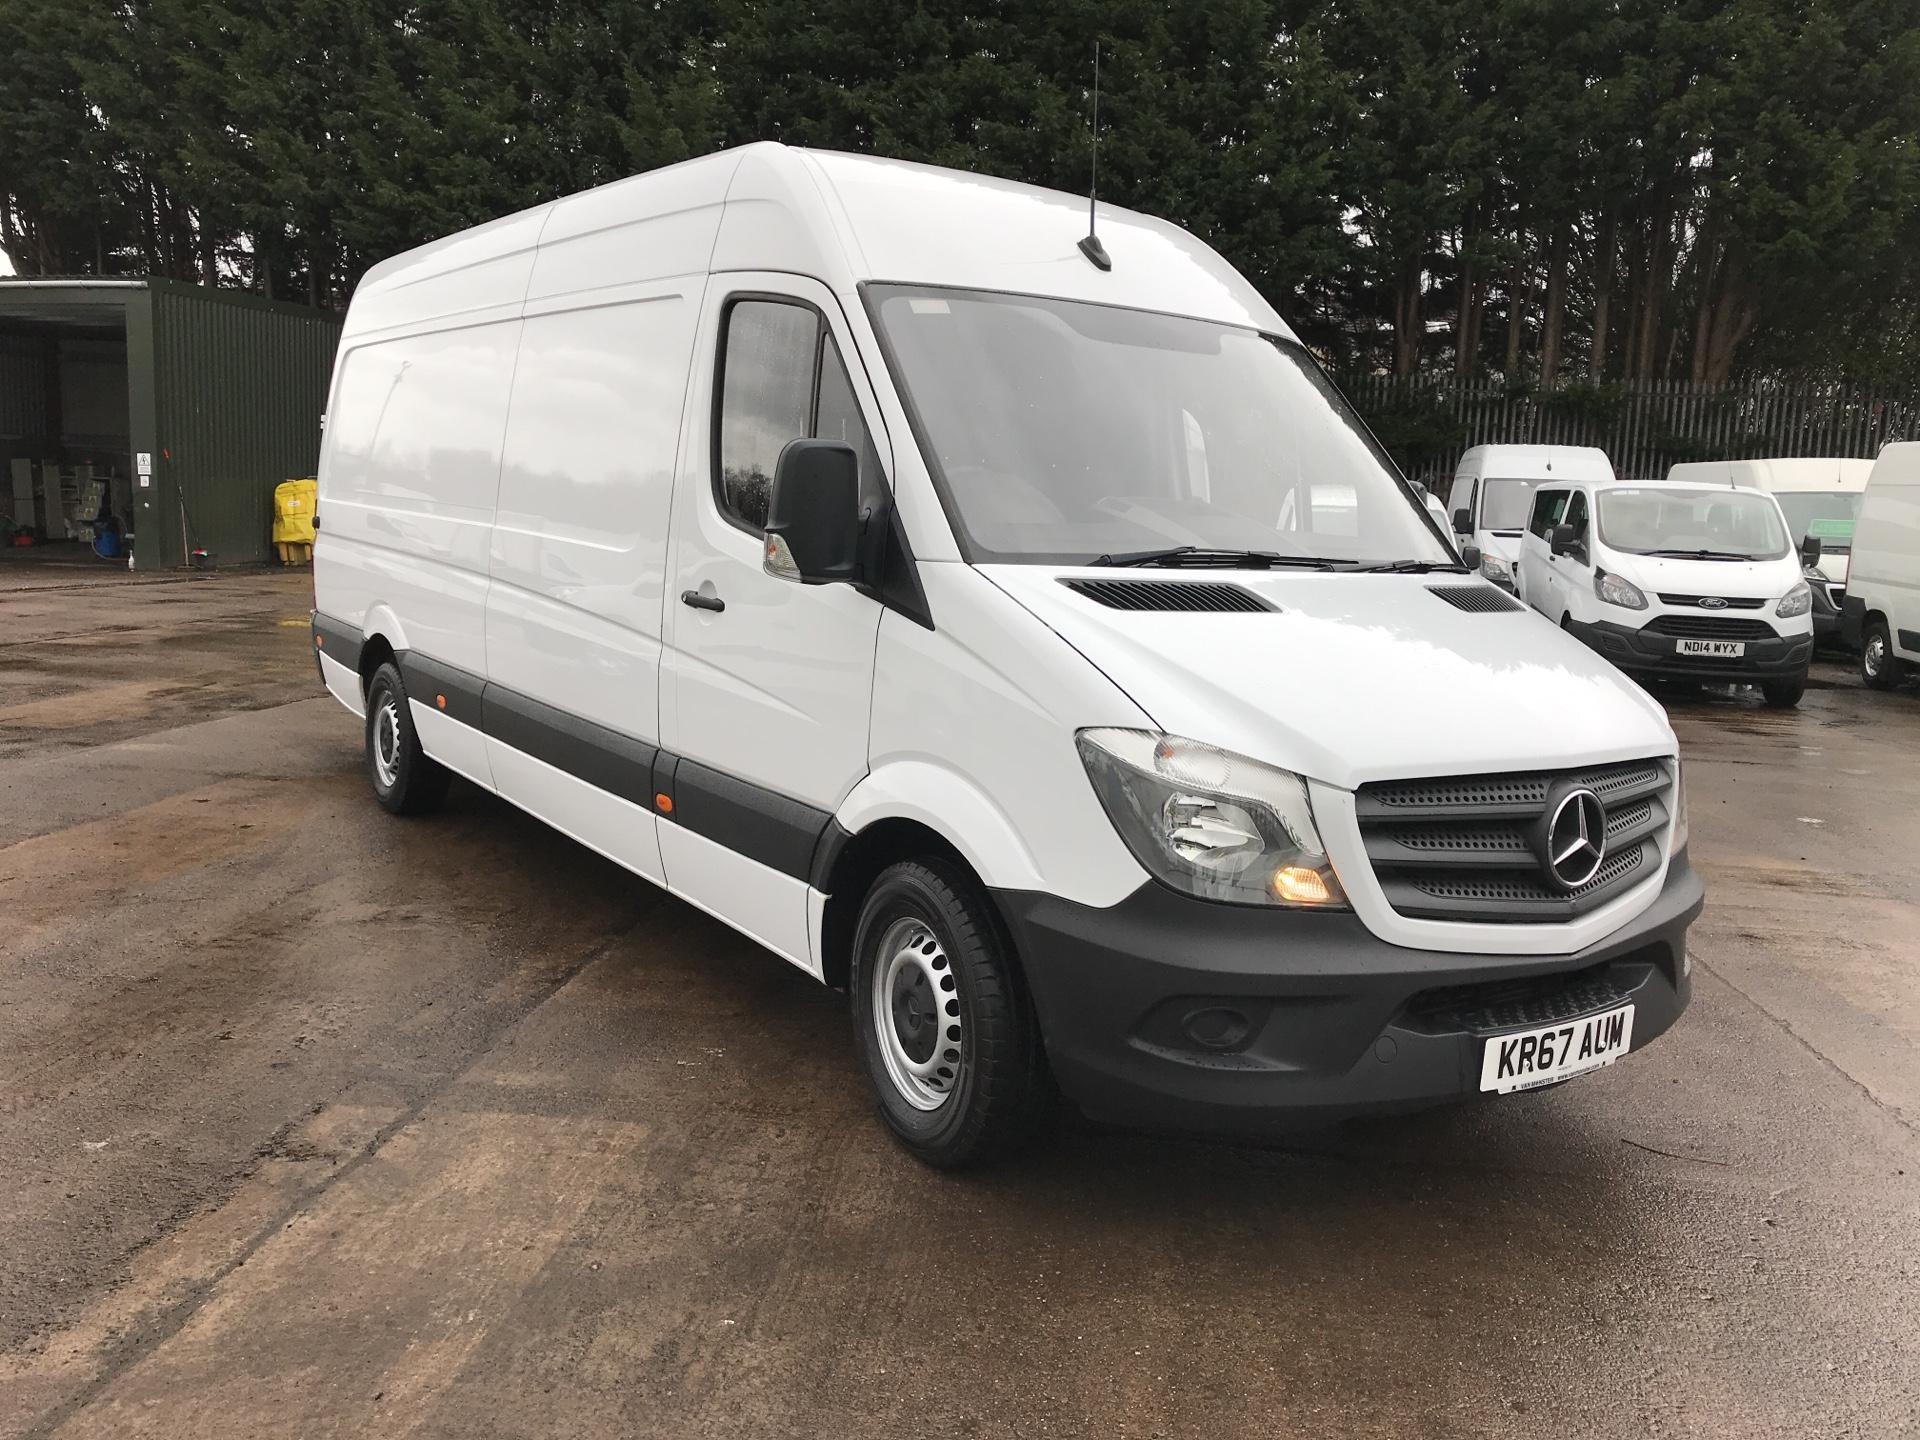 2017 Mercedes-Benz Sprinter 314 CDI LWB HIGH ROOF VAN EURO 6 (KR67AUM)